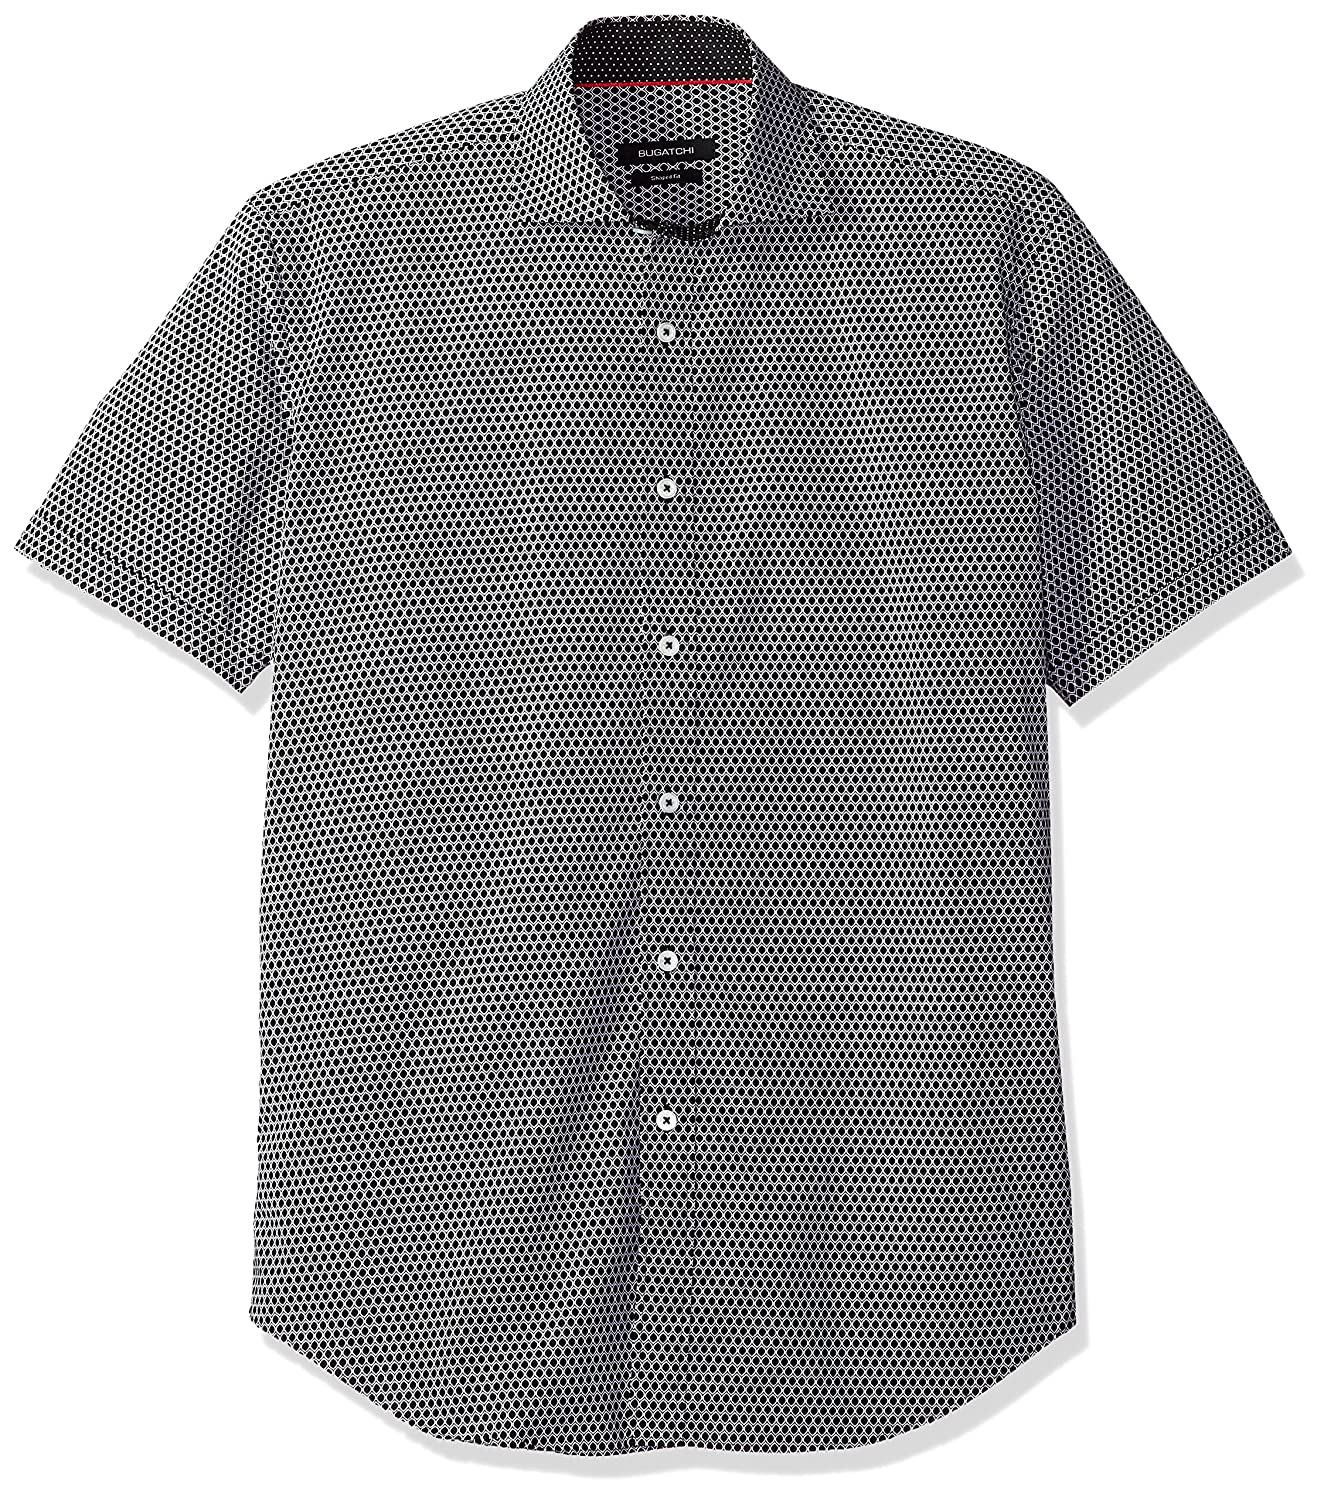 BUGATCHI Mens Printed Black Geo Shapes Spread Collar Short Sleeve Shirt